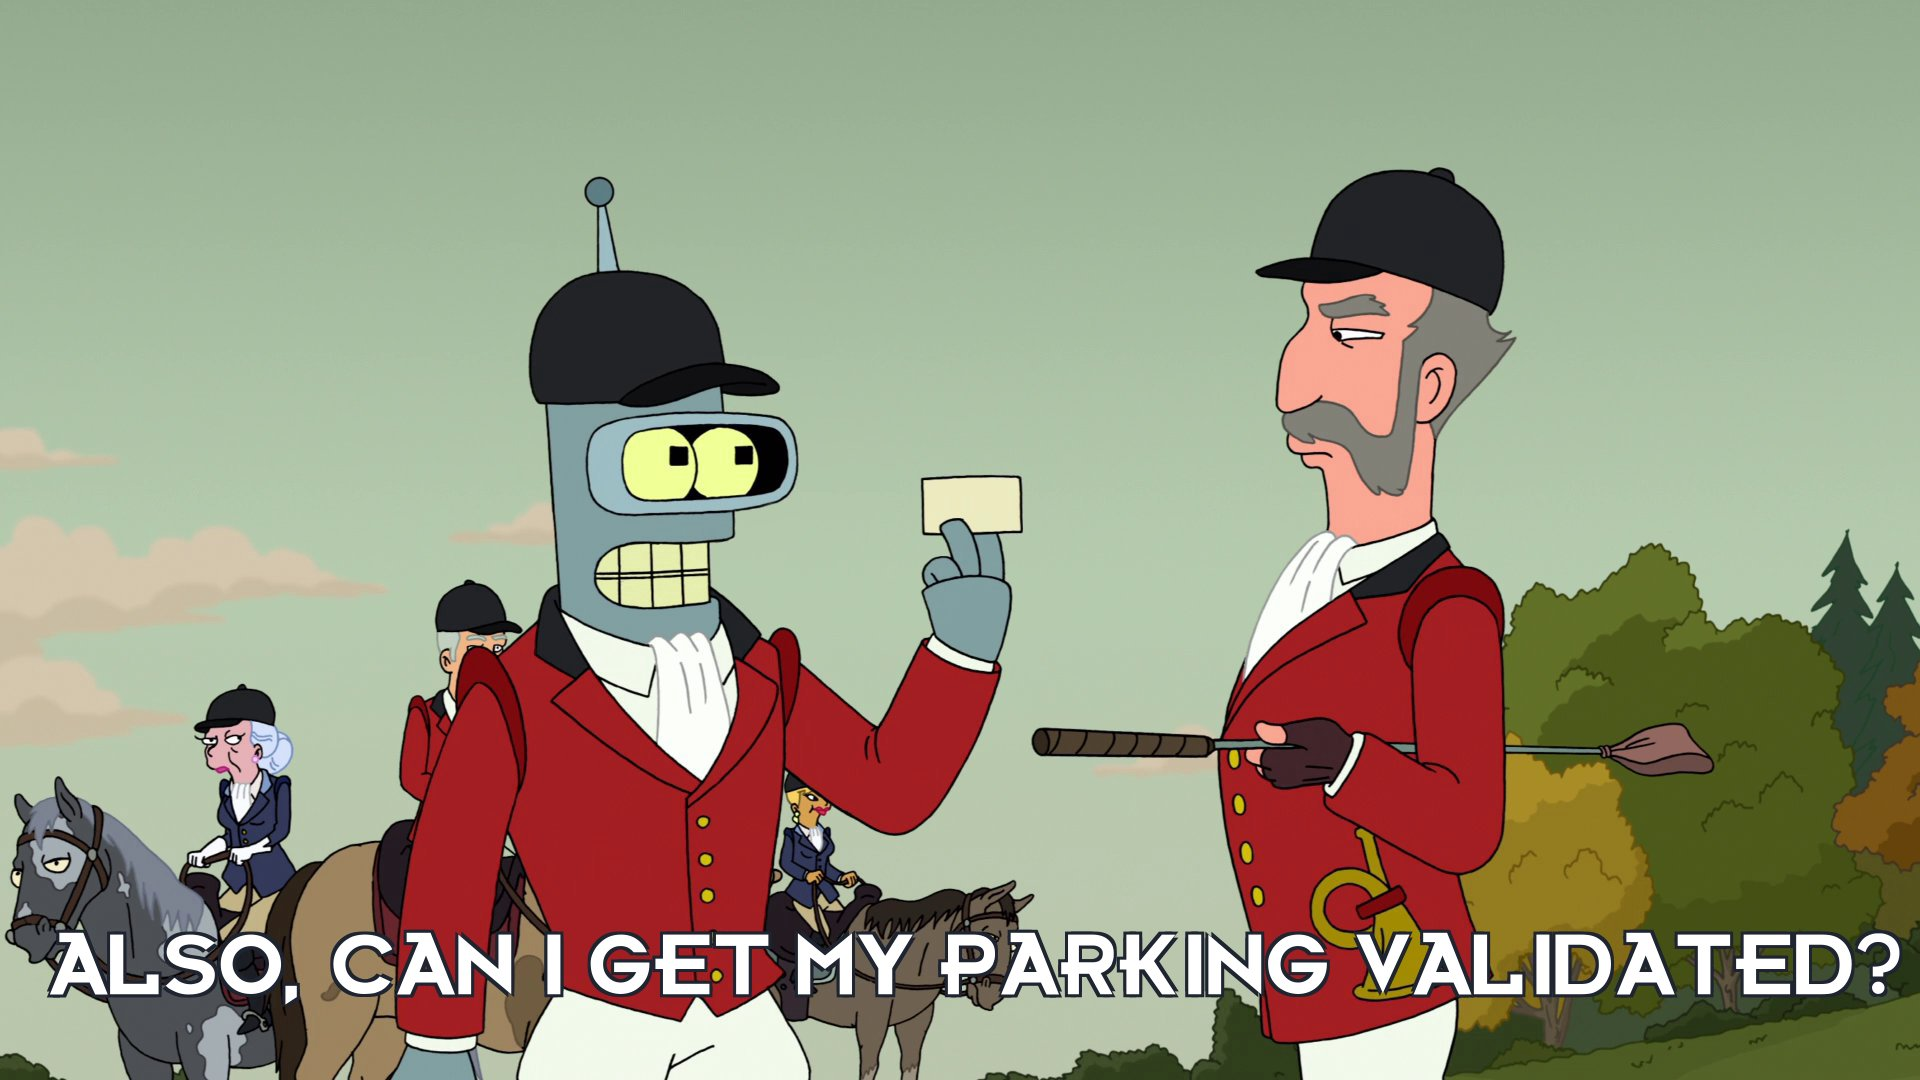 Bender Bending Rodriguez: Also, can I get my parking validated?